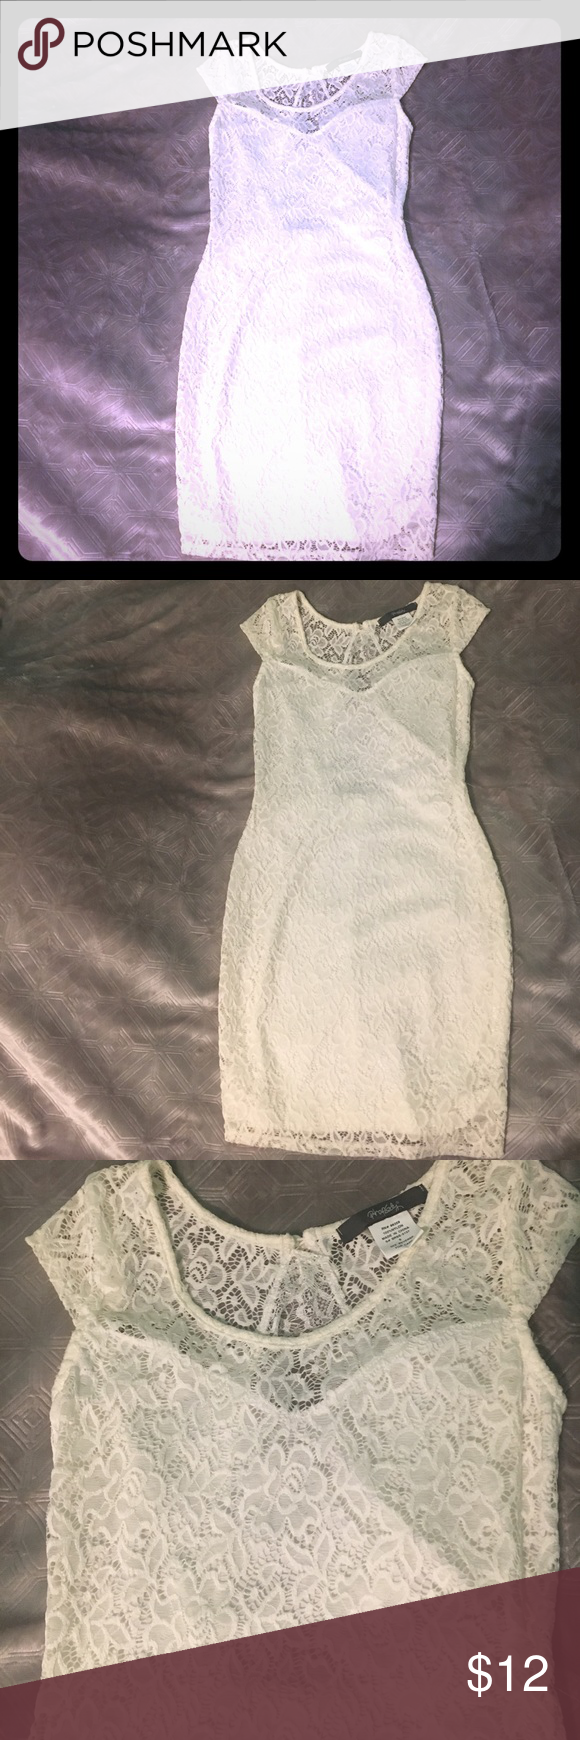 White lace dress Laced dress with open back cut out. Dresses Mini